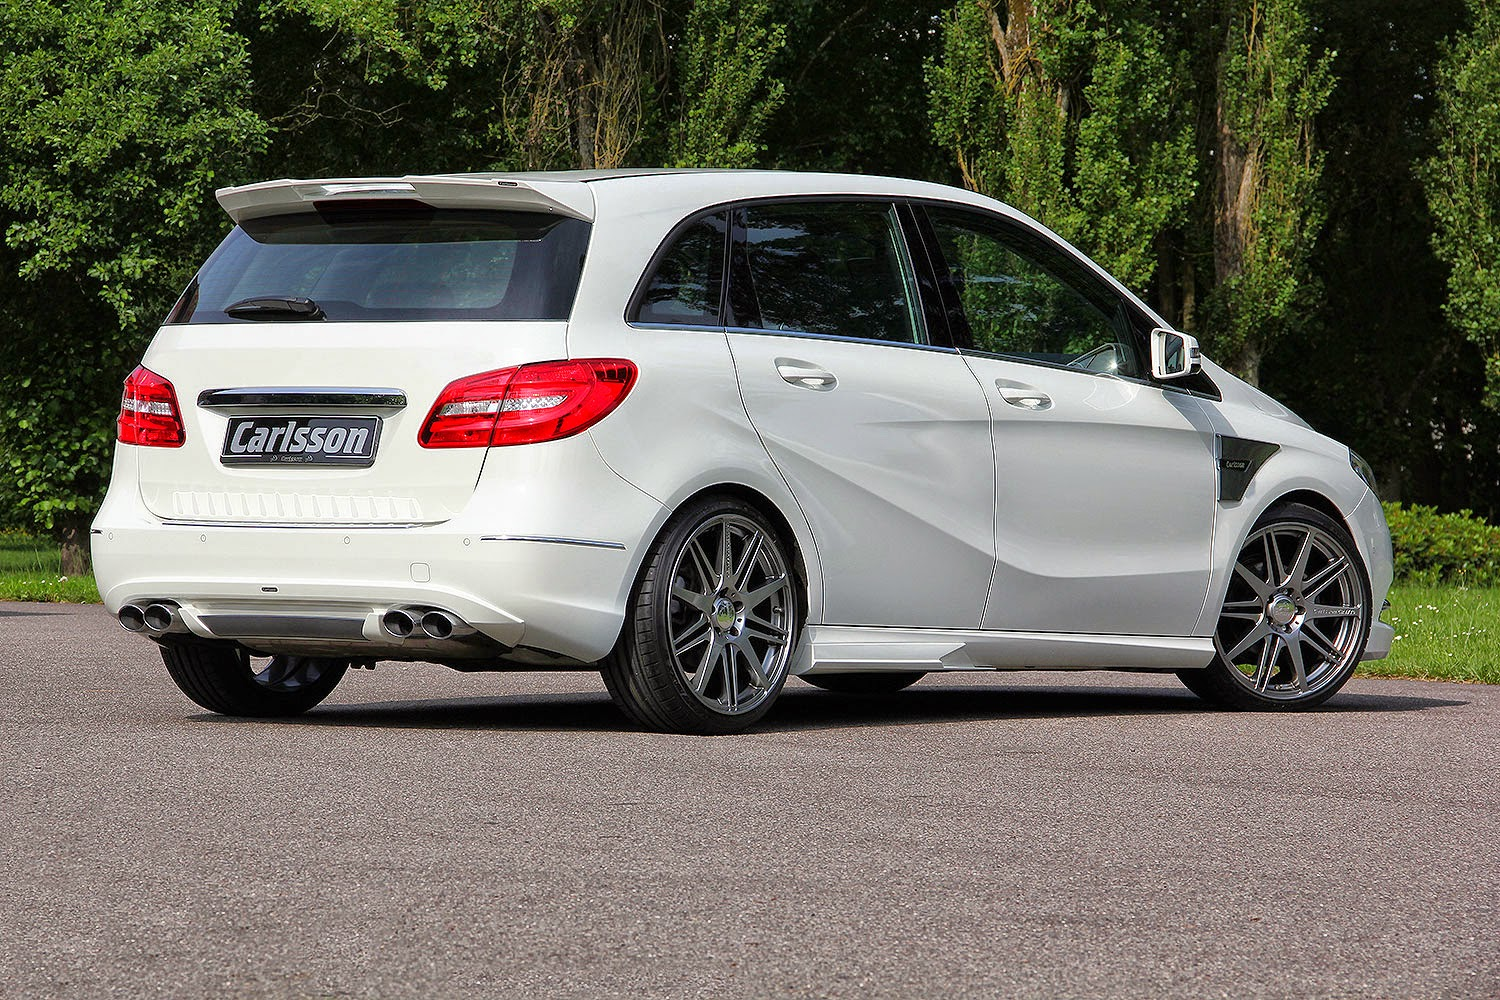 Mercedes benz b class w246 tuned by carlsson benztuning for Mercedes benz tuning